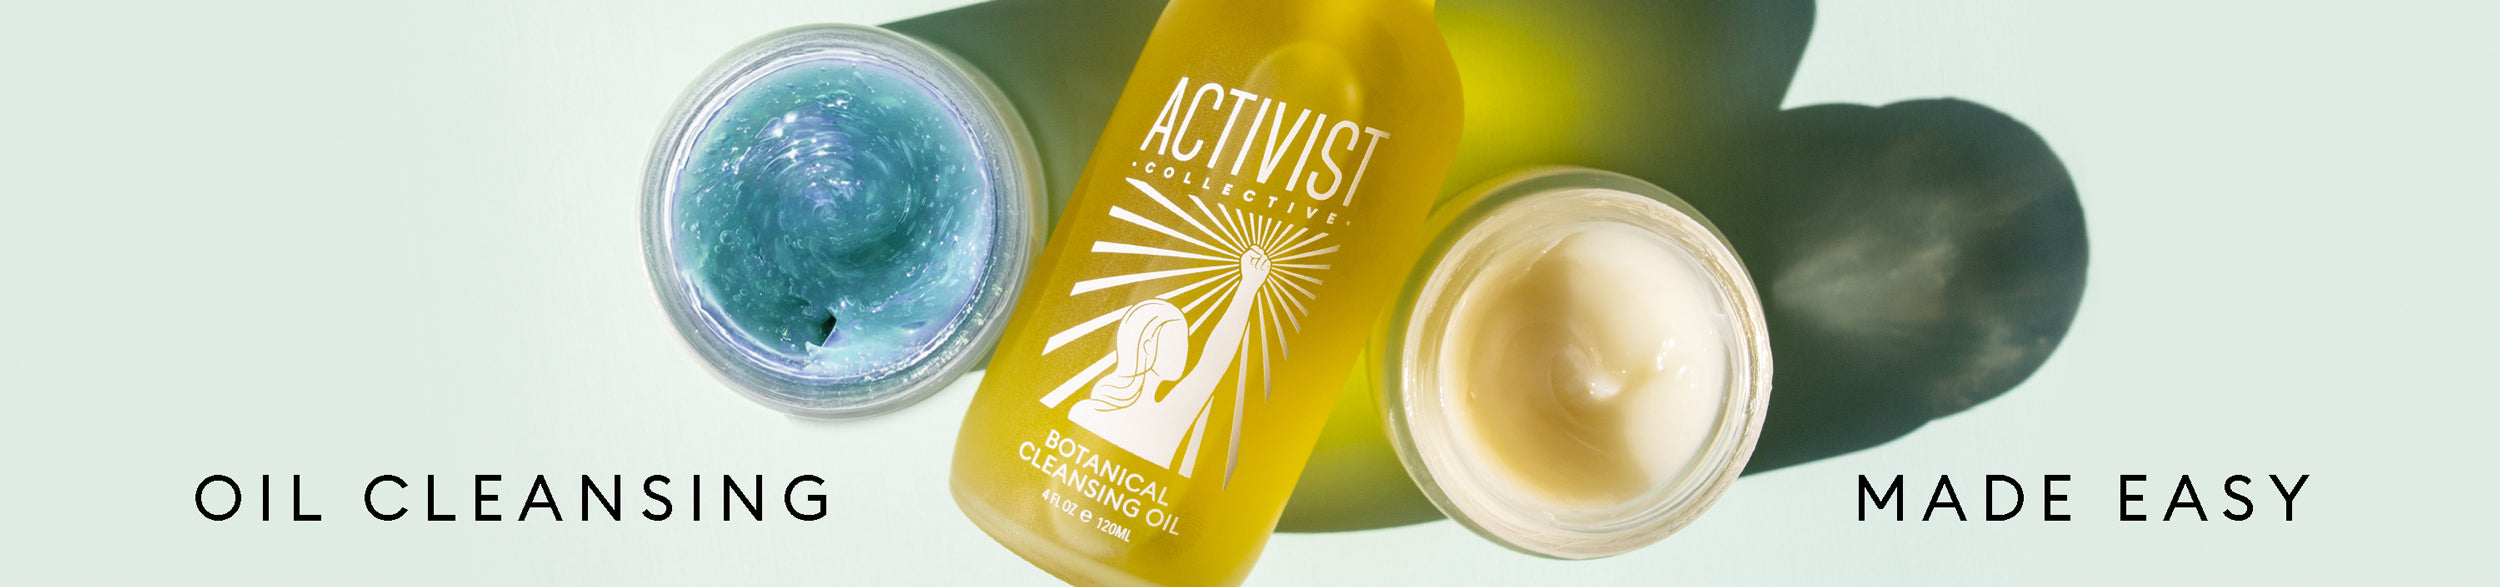 activist skincare cleansers